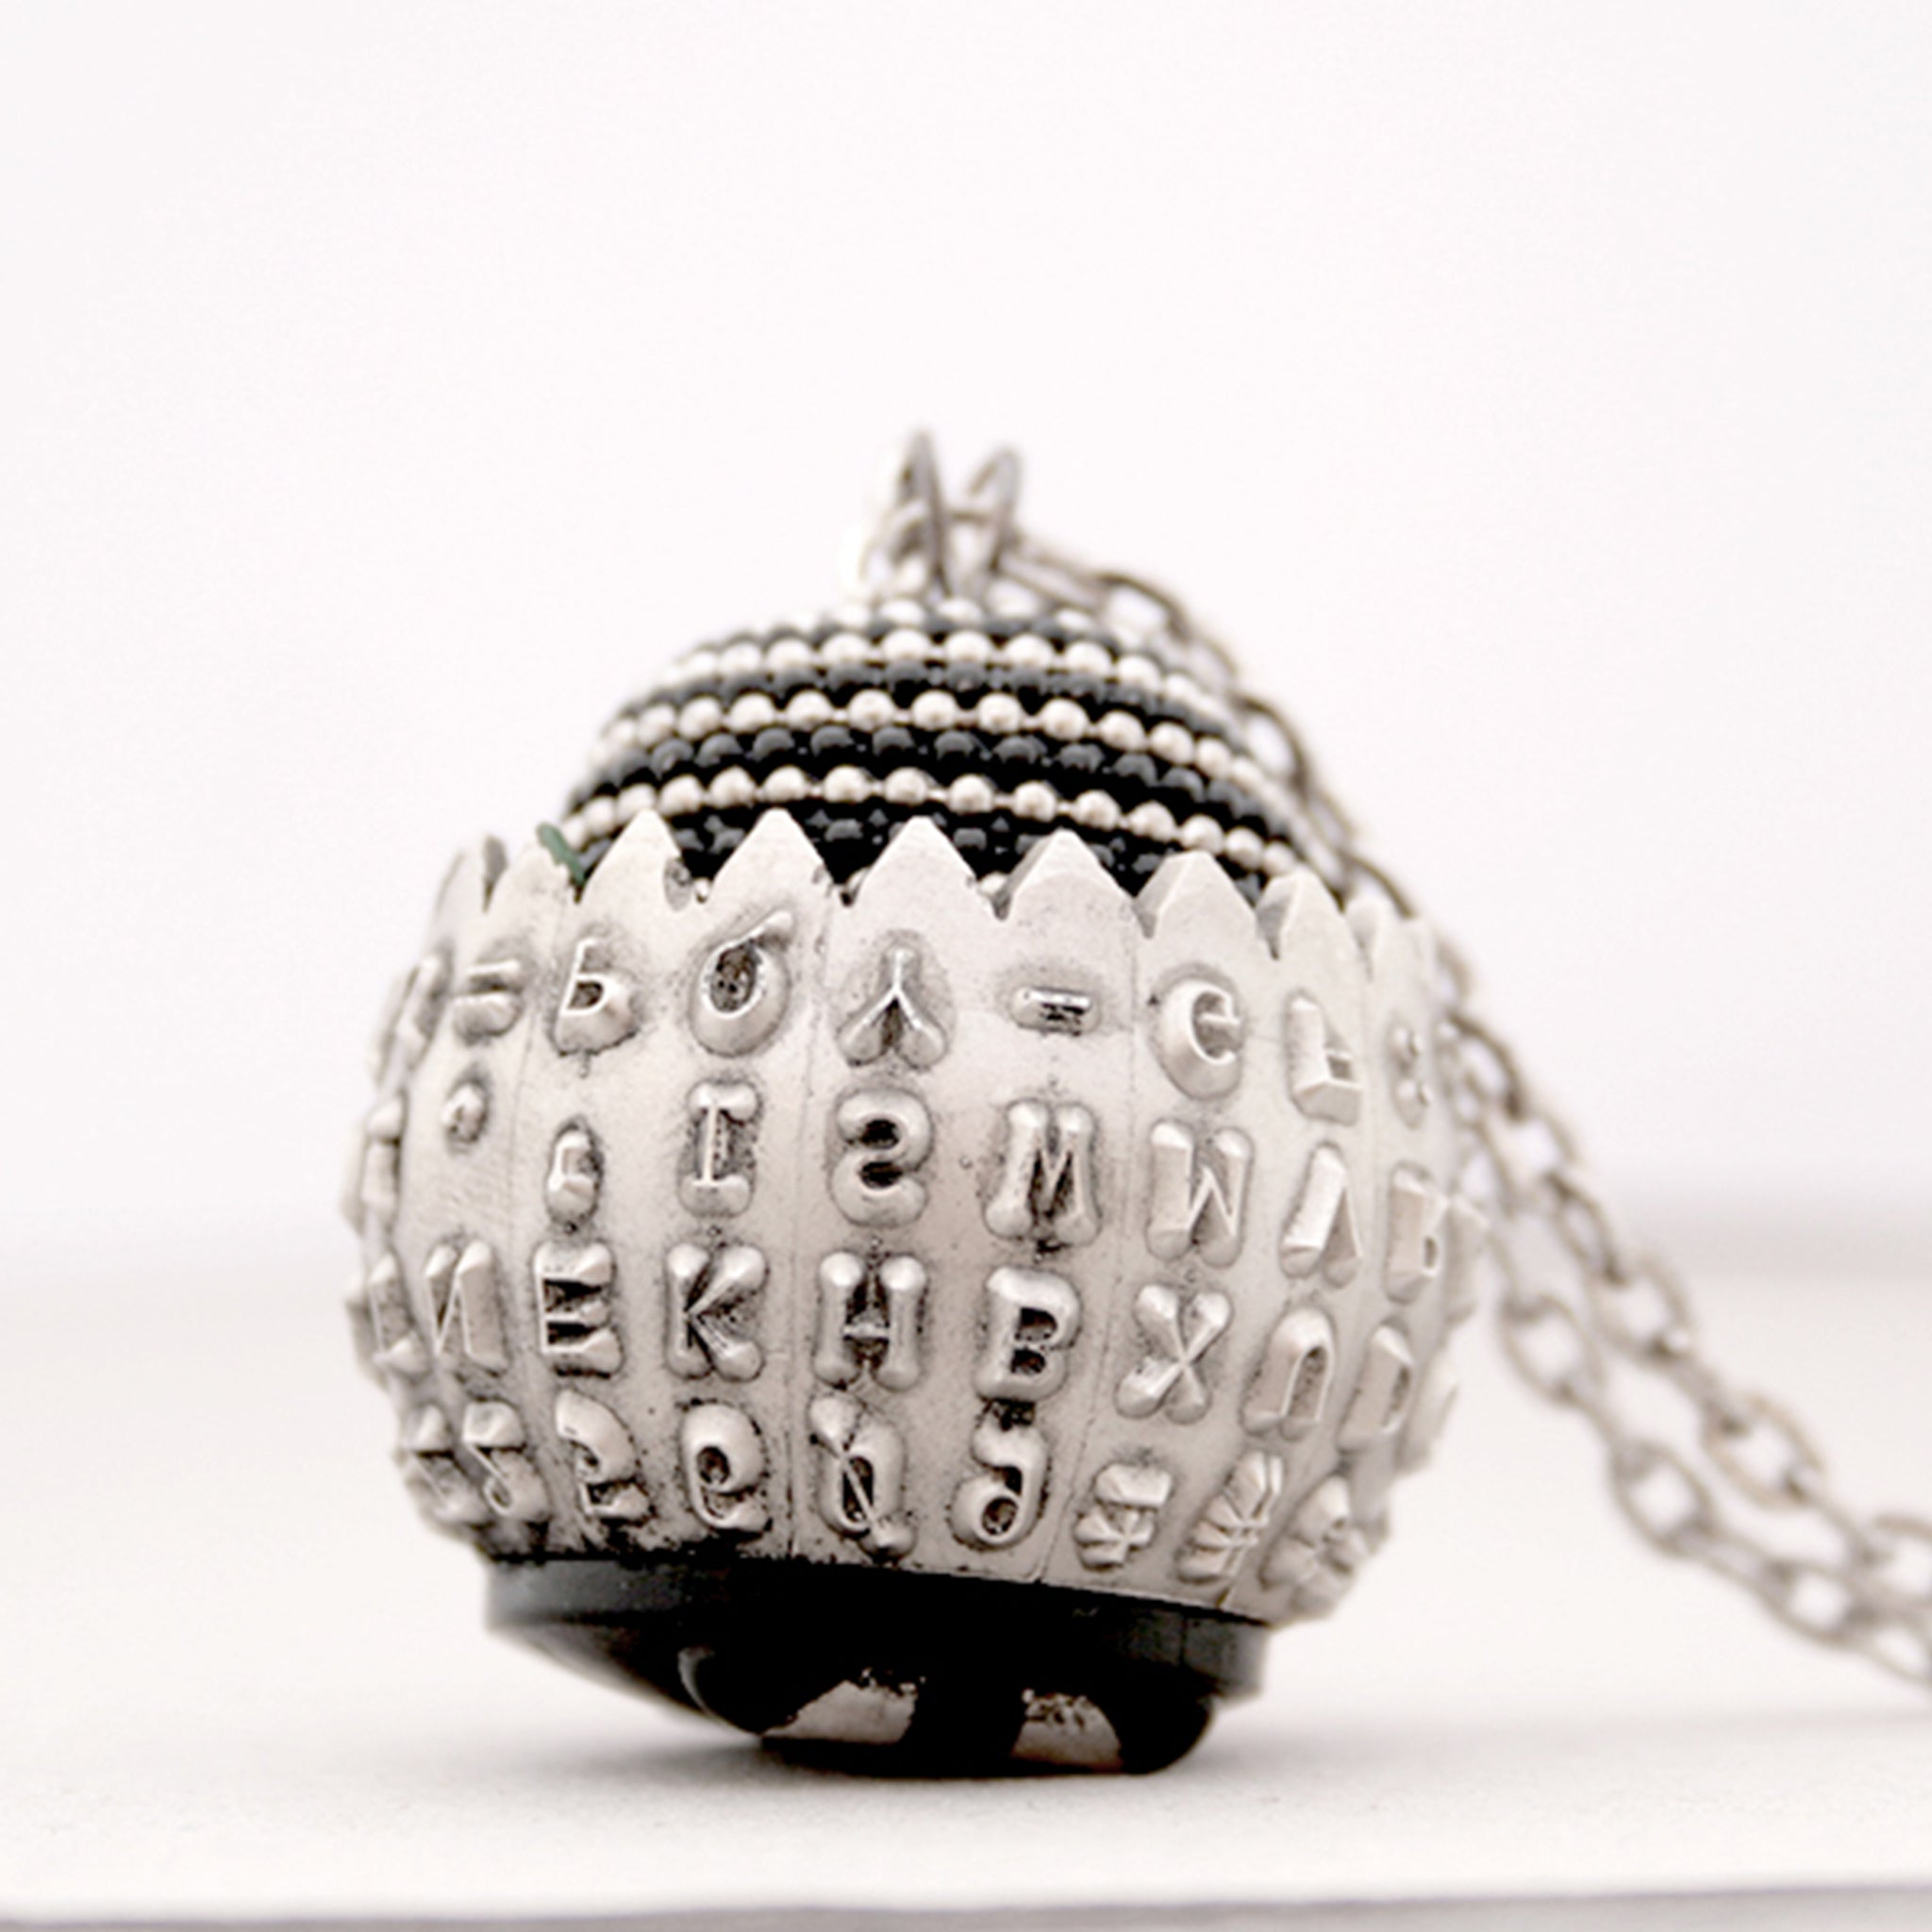 IBM Selectric typewriter font ball with large metal bead turned into eye catching necklace